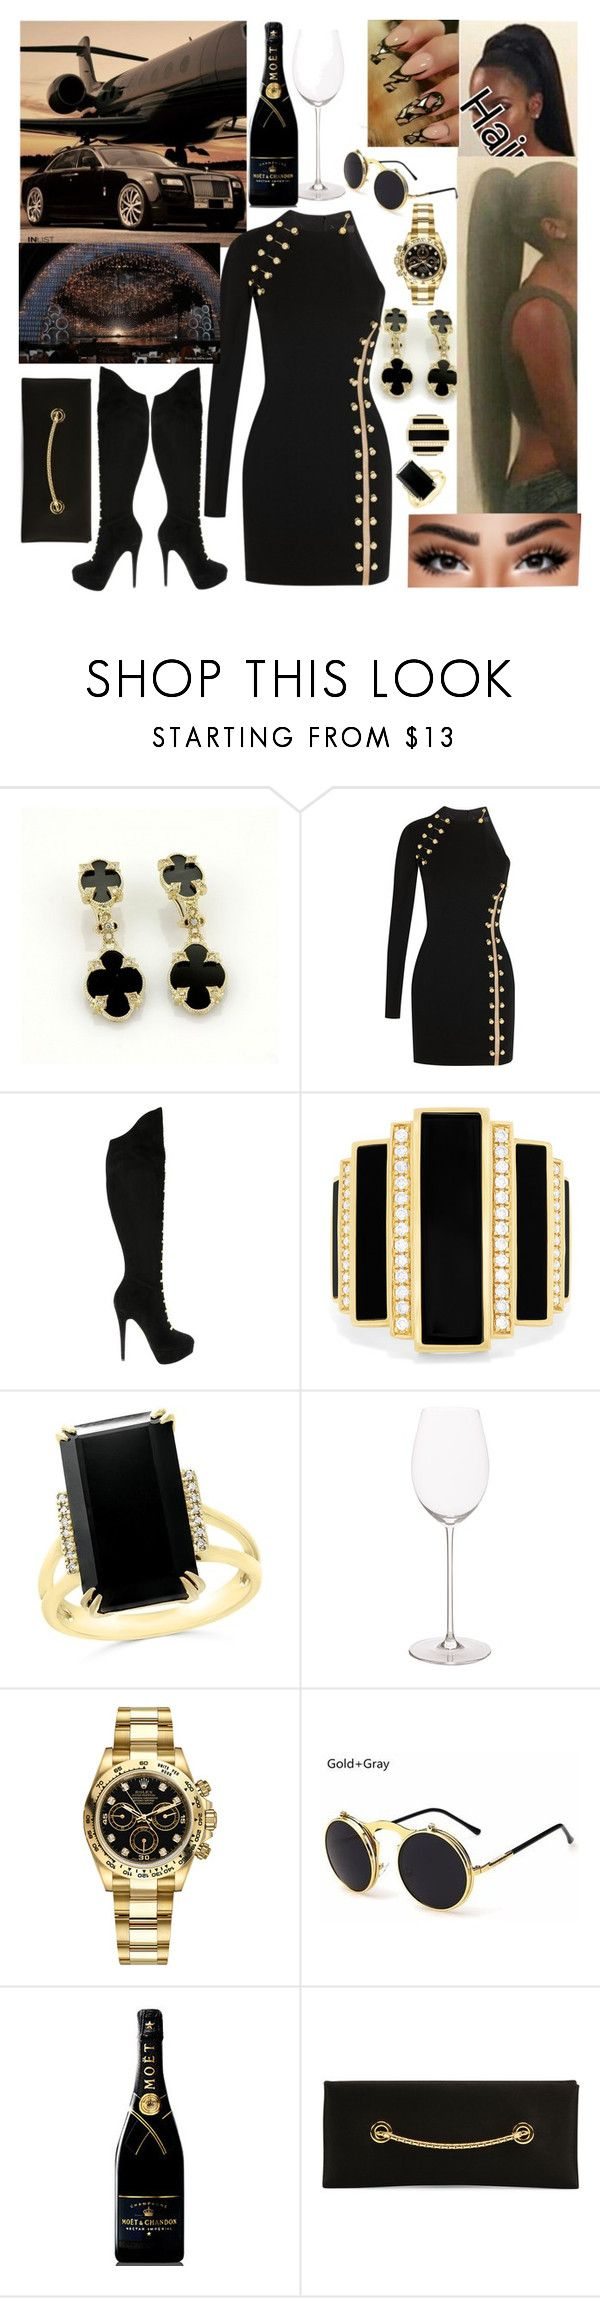 """Superstar"" by goodgirldeja ❤ liked on Polyvore featuring Judith Ripka, Versus, Charlotte Olympia, Effy Jewelry, Bloomingdale's, Riedel, Rolex, MoÃ«t & Chandon and Tom Ford"